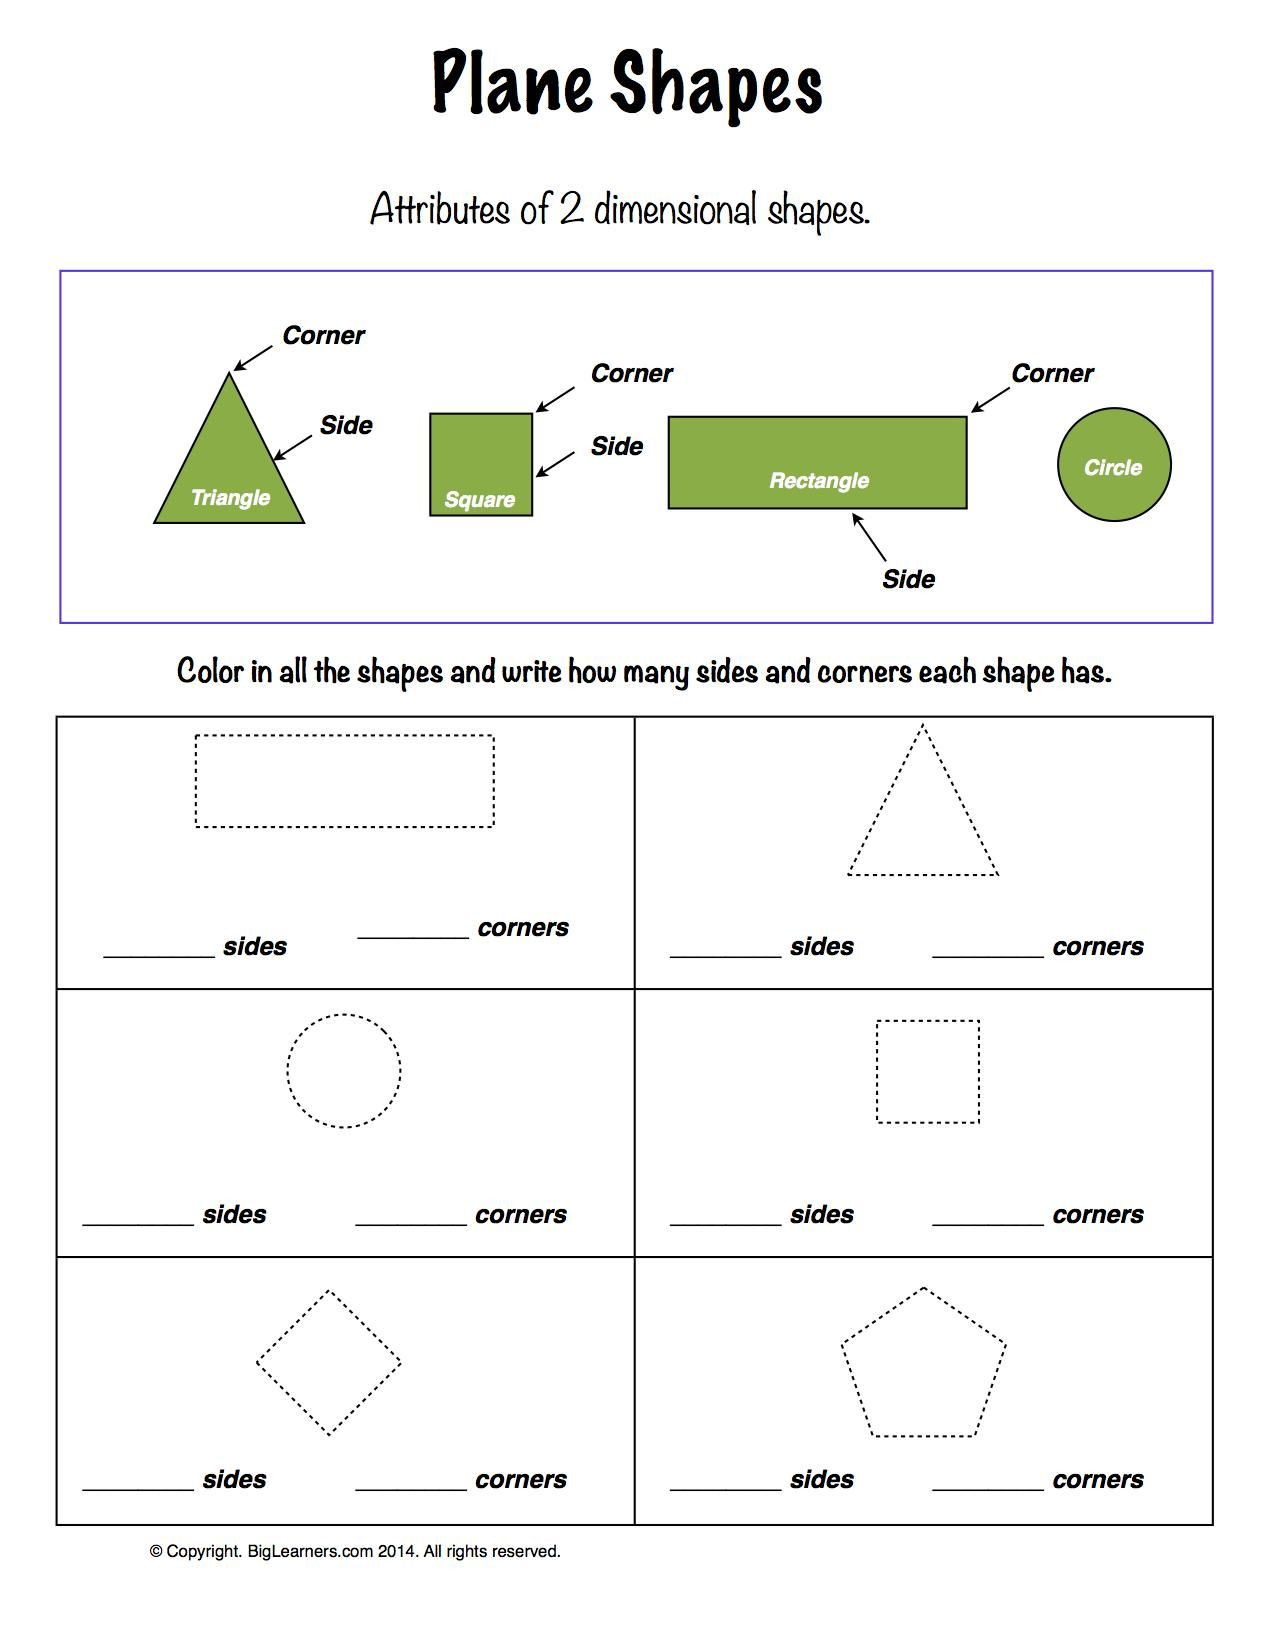 Geometric Shapes Worksheet 2nd Grade Worksheet Plane Shapes